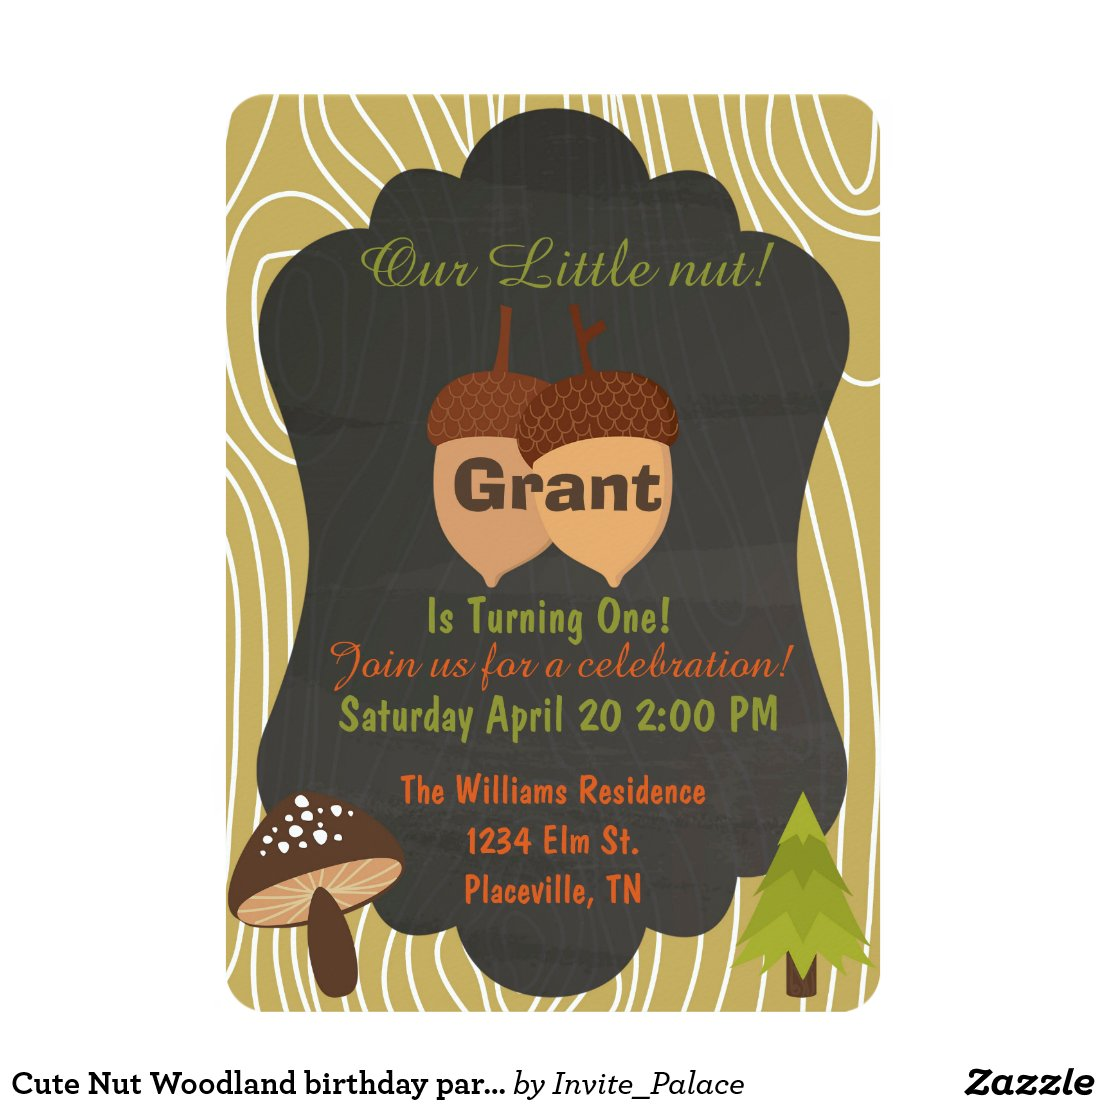 Cute Nut Woodland birthday party invitation 5